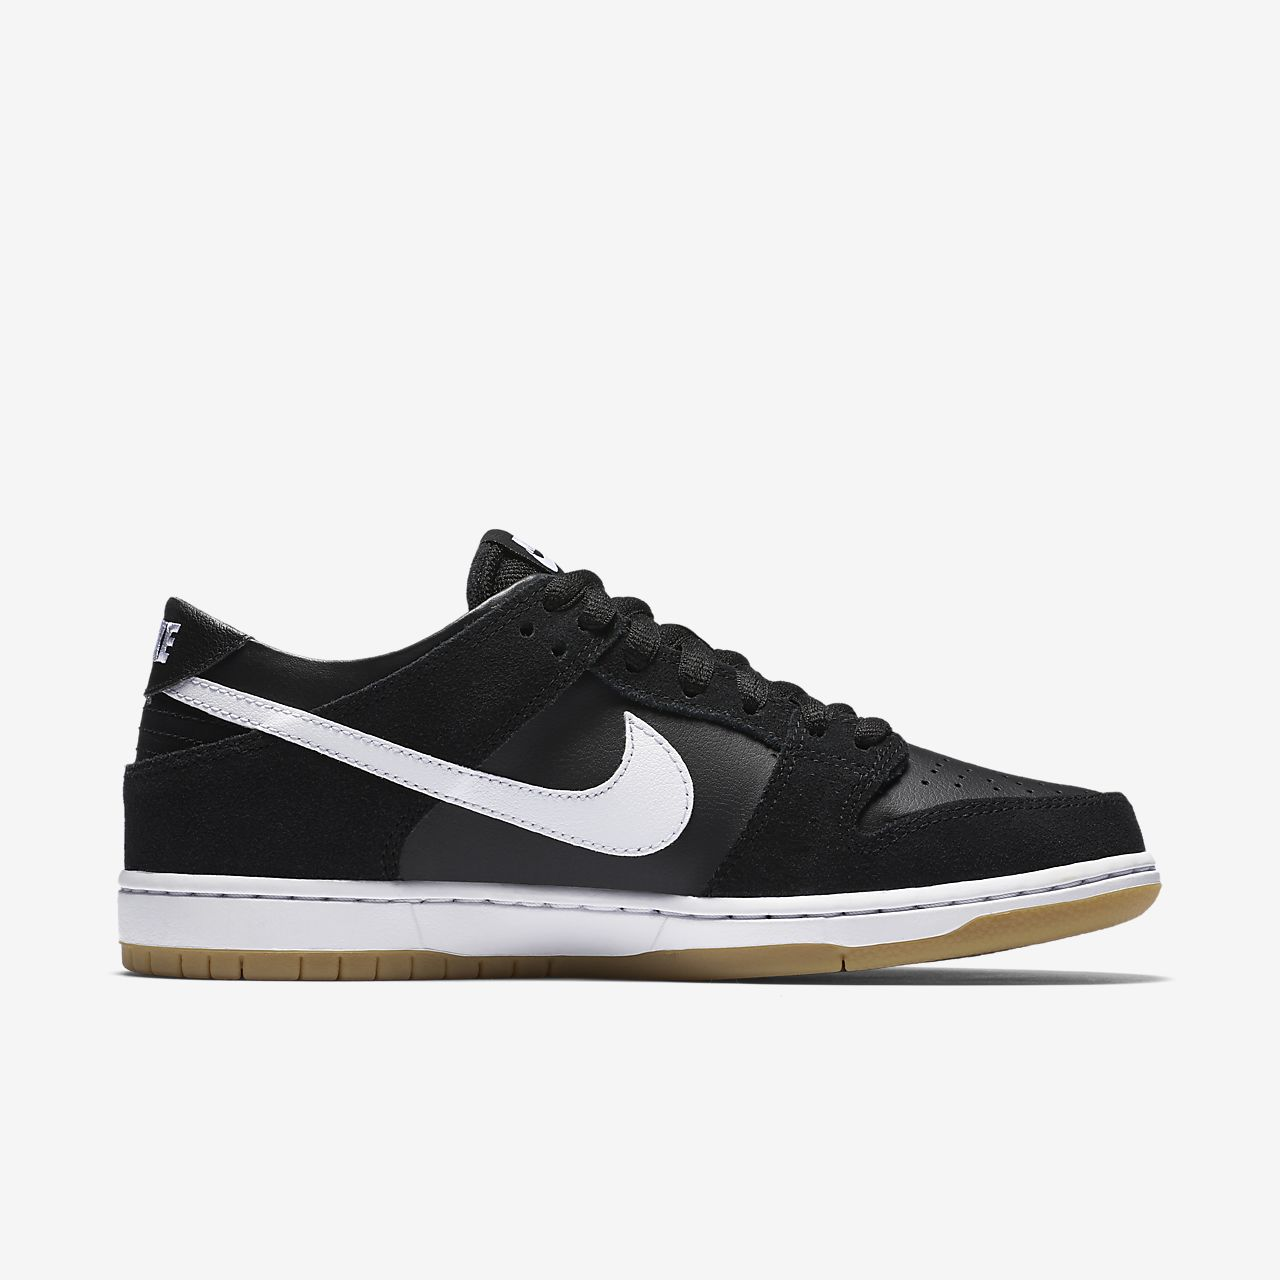 nike shoes 10.5 womens dunk low 863978